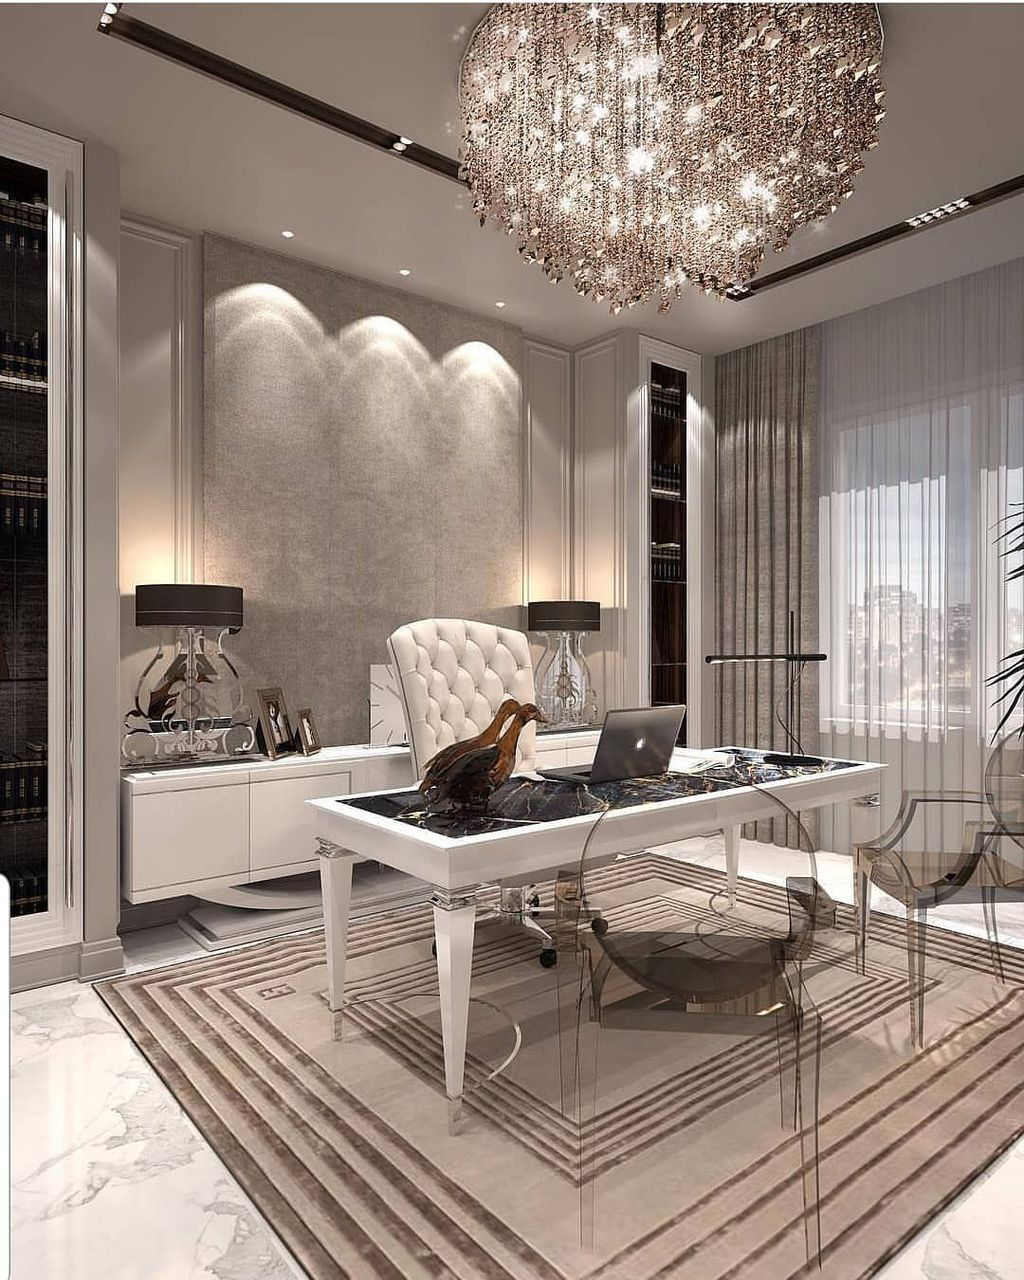 35 Gorgeous Modern Office Interior Design Ideas You Never Seen Before - HOMYHOMEE